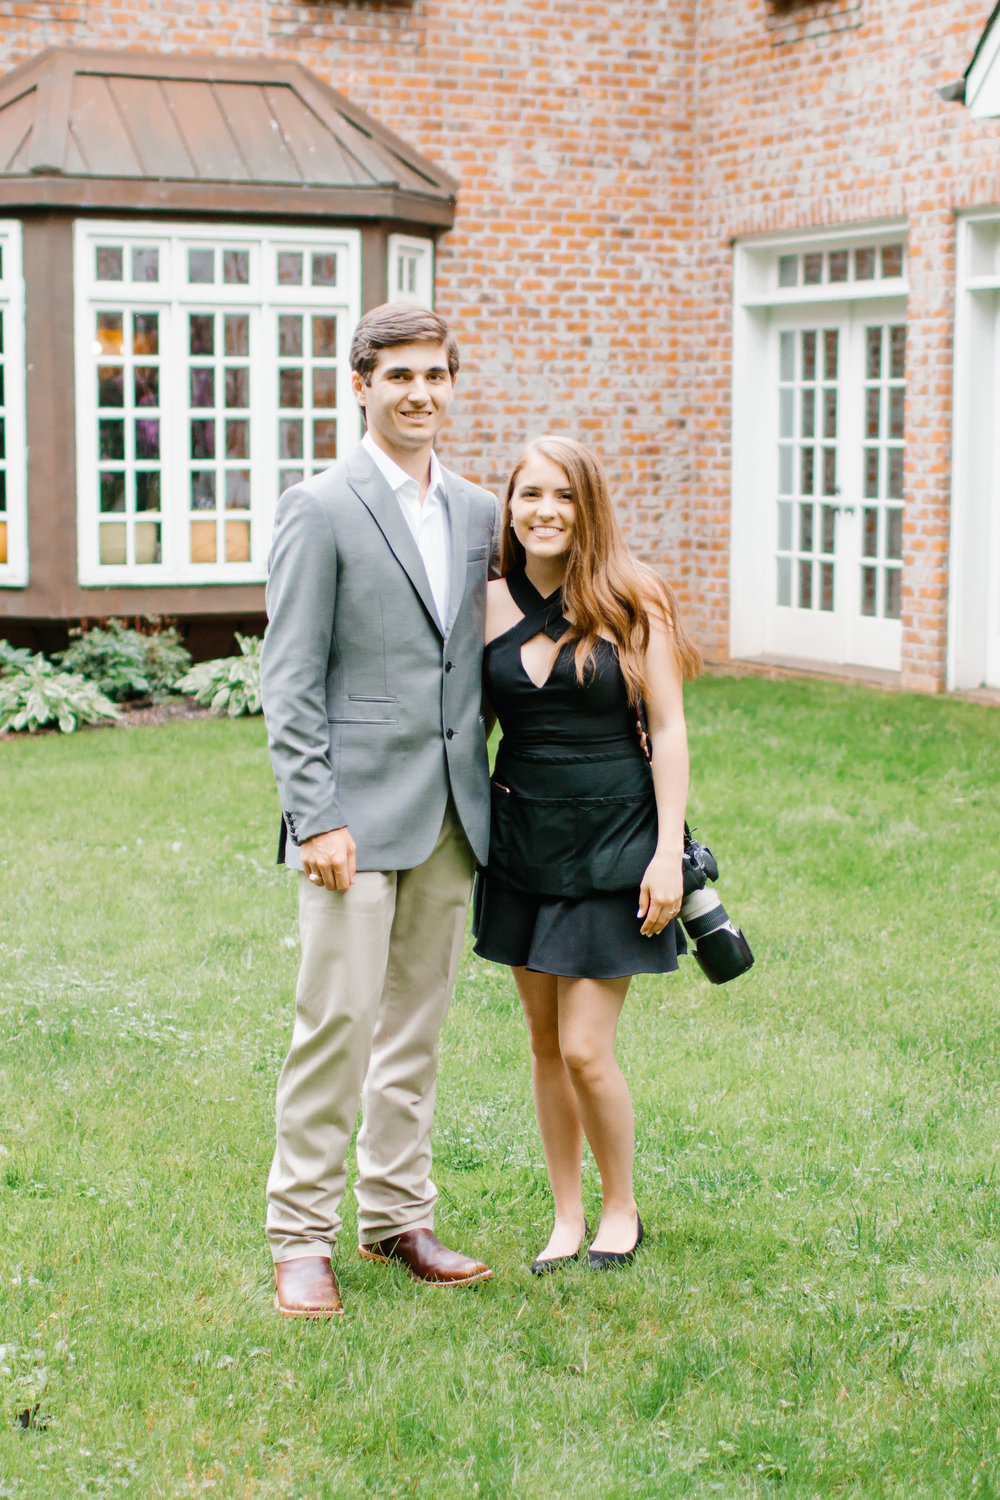 BTS with my cute date at a wedding in NC this year!!